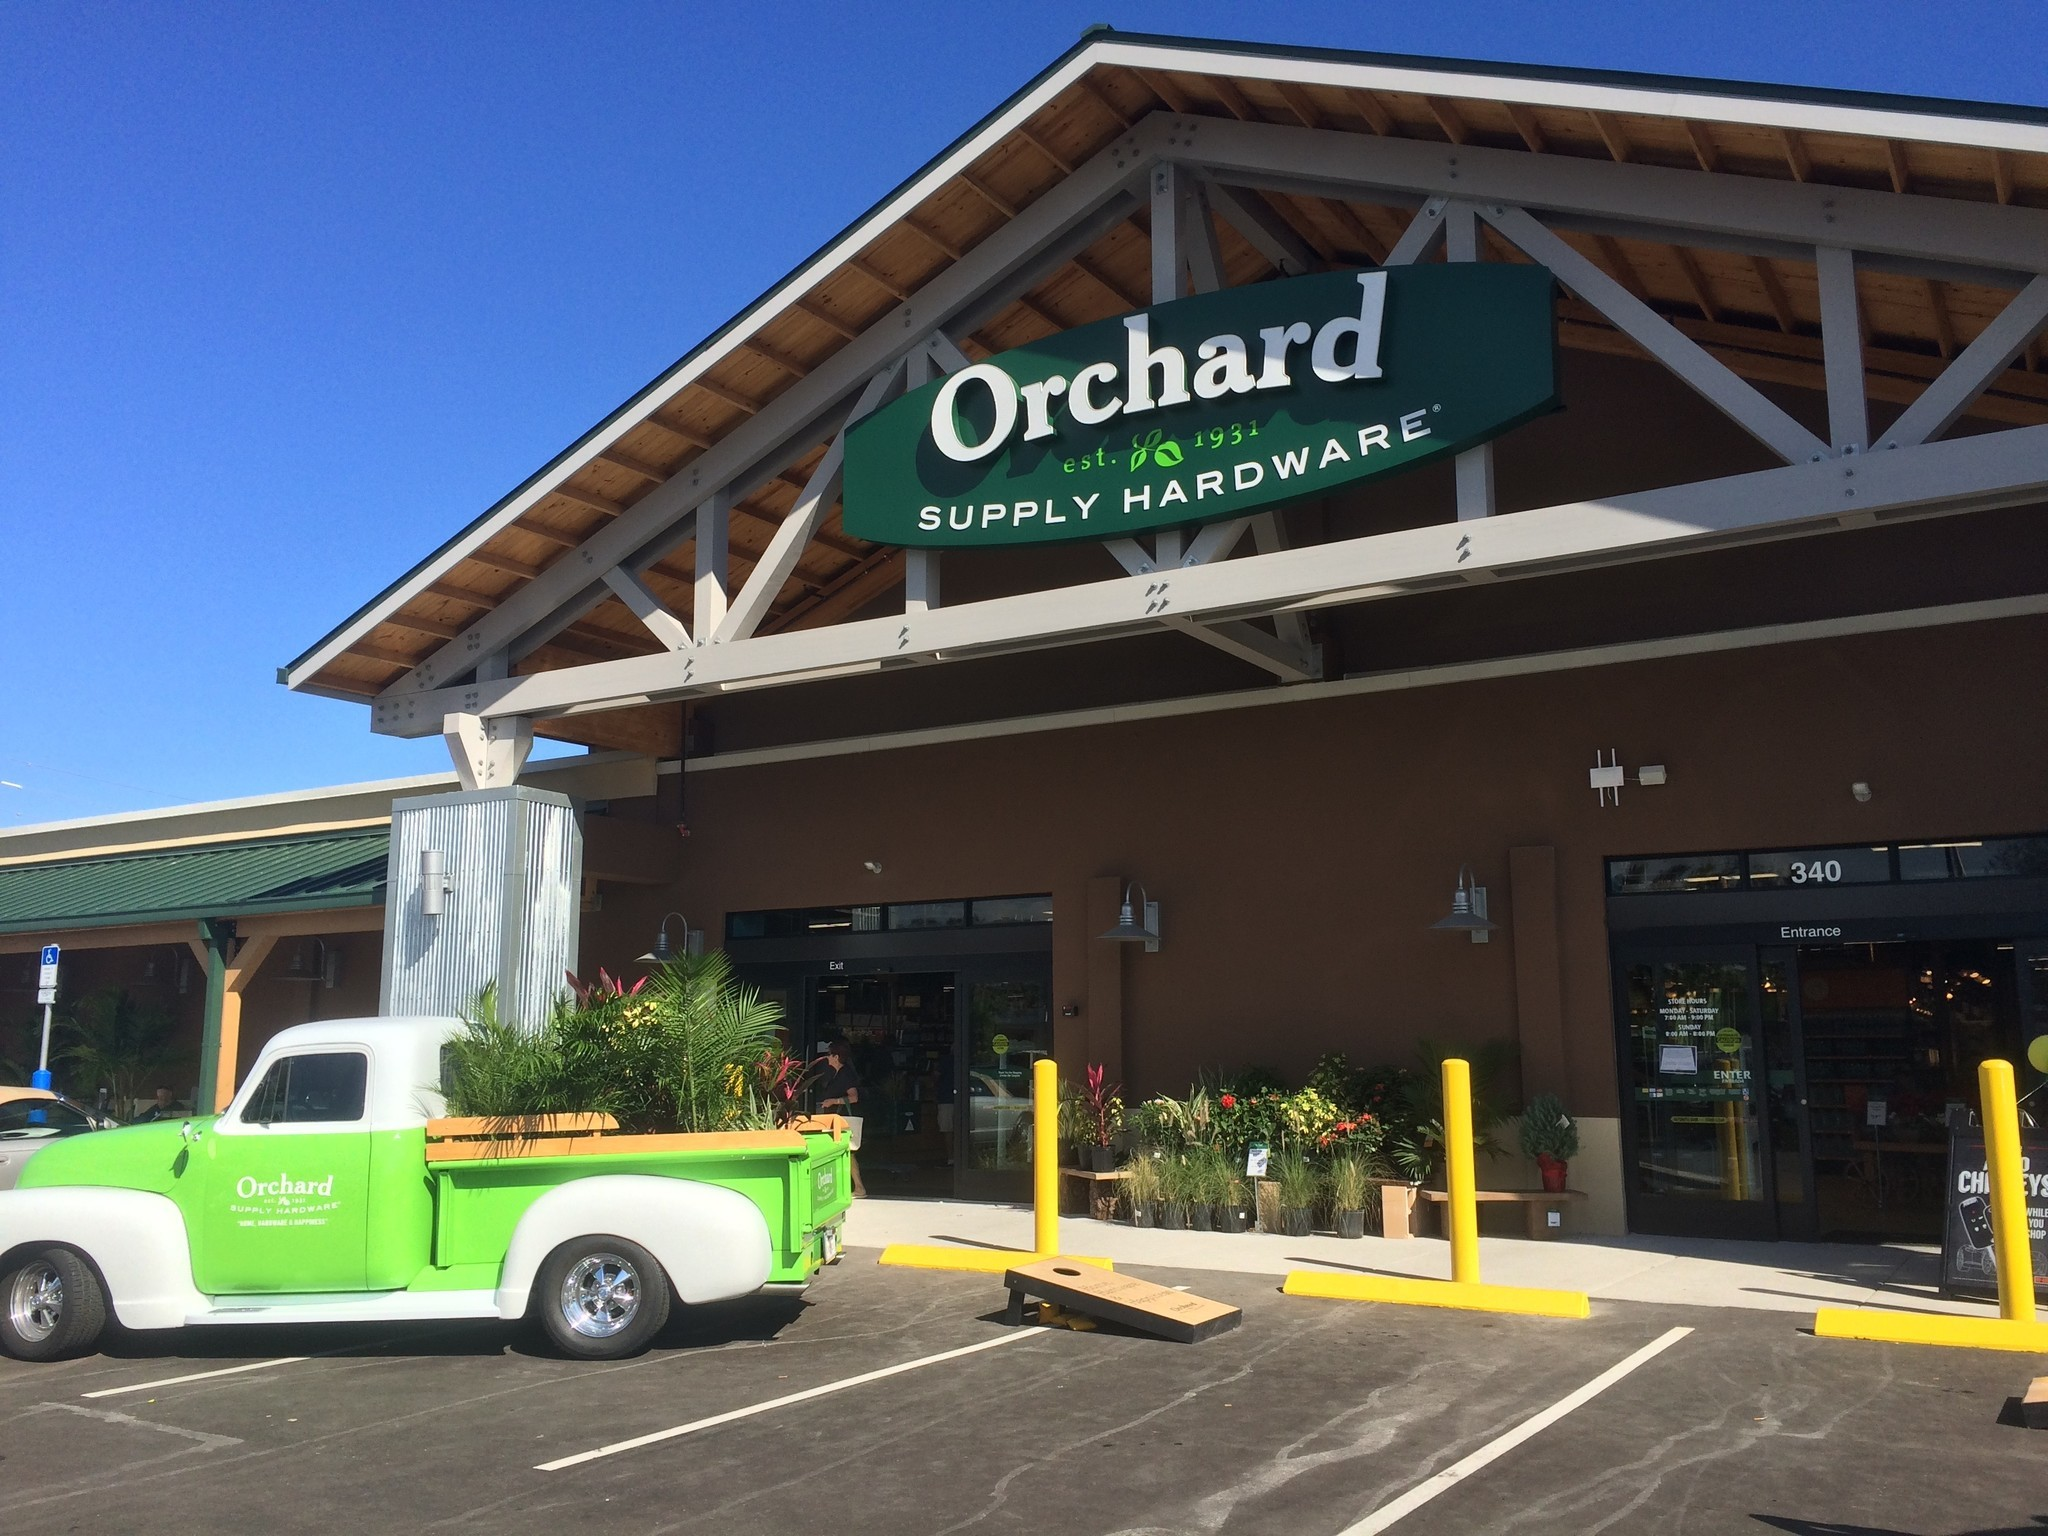 SAN JOSE -- Orchard Supply Hardware, the iconic do-it-yourself, fix-it chain founded in San Jose during the Great Depression, is closing all its stores by year's end, a spokeswoman for parent.